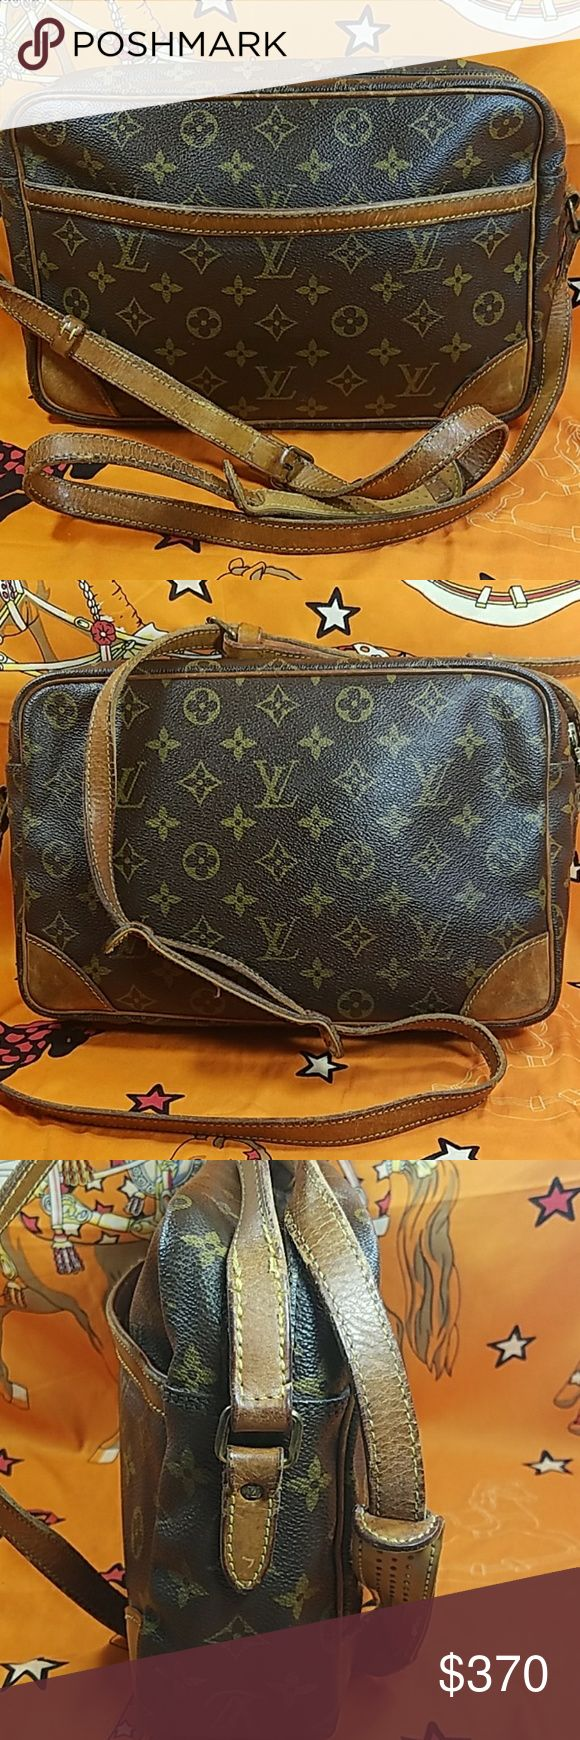 "Authentic Louis Vuitton Monogram Trocadero 30 The outer leather has some white spots around. The leather trims and (about)55"" long adjusable strap showed sign of used with stains, scratches &darkened (3rd photo). Inside showed wearing also with pen marks, stains, & scratches. There is bubbles inside outer pocket ( 4th photo). Date code: 882TH. It made in France. Dimension: (about) 7.5, 11, & 3. No trade please. Louis Vuitton Bags Crossbody Bags"